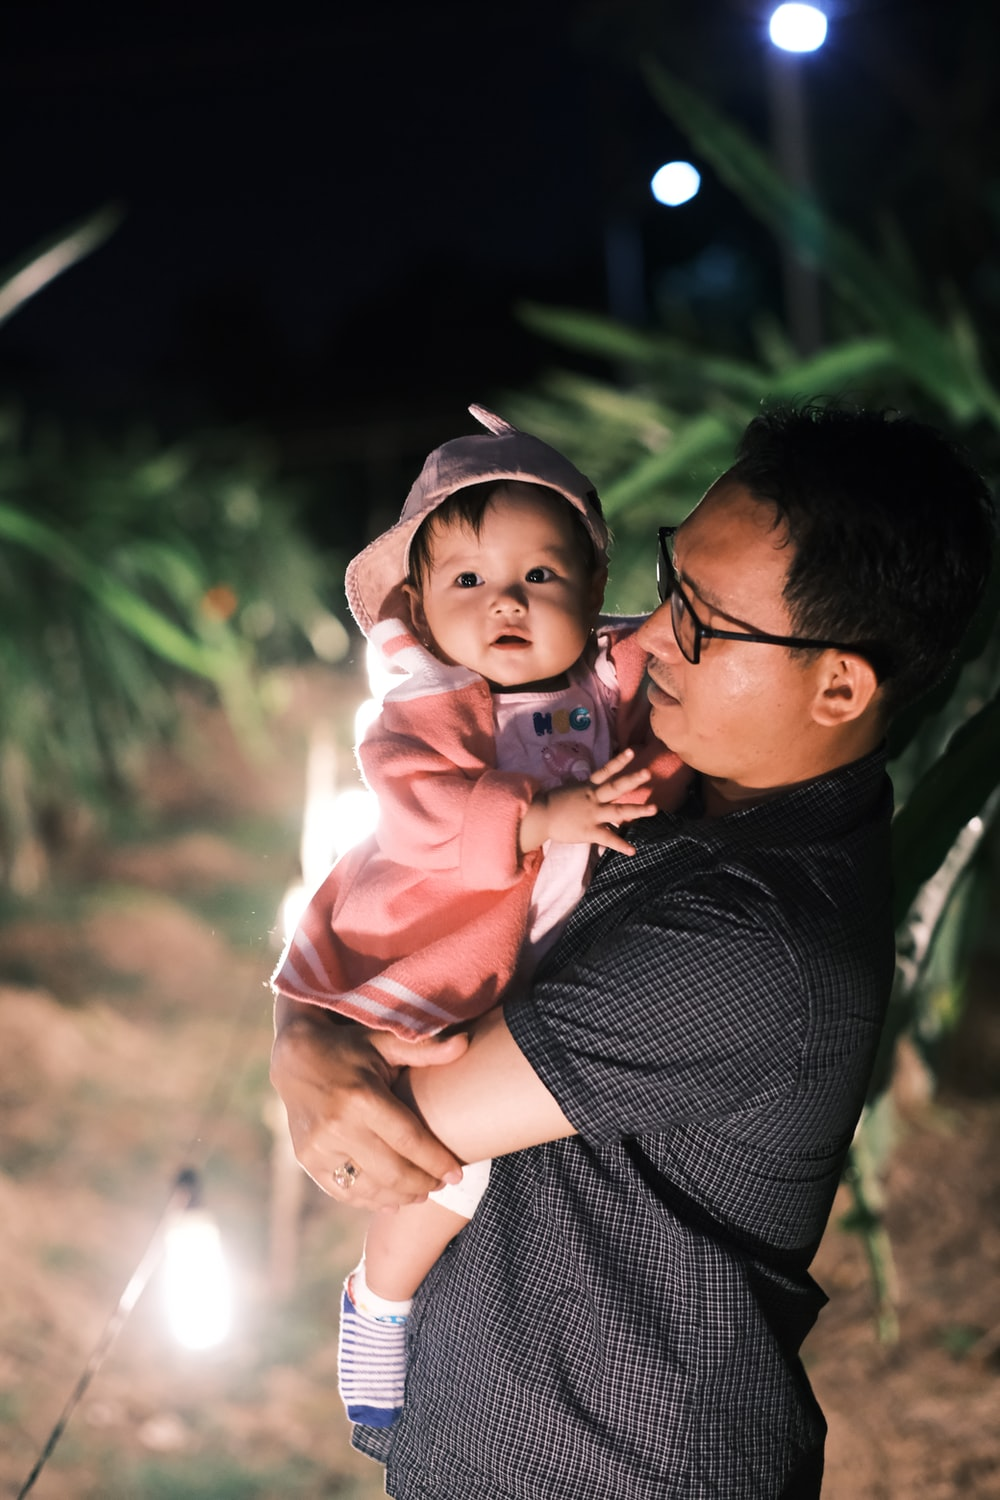 man in black and white pinstripe dress shirt carrying baby in pink hoodie